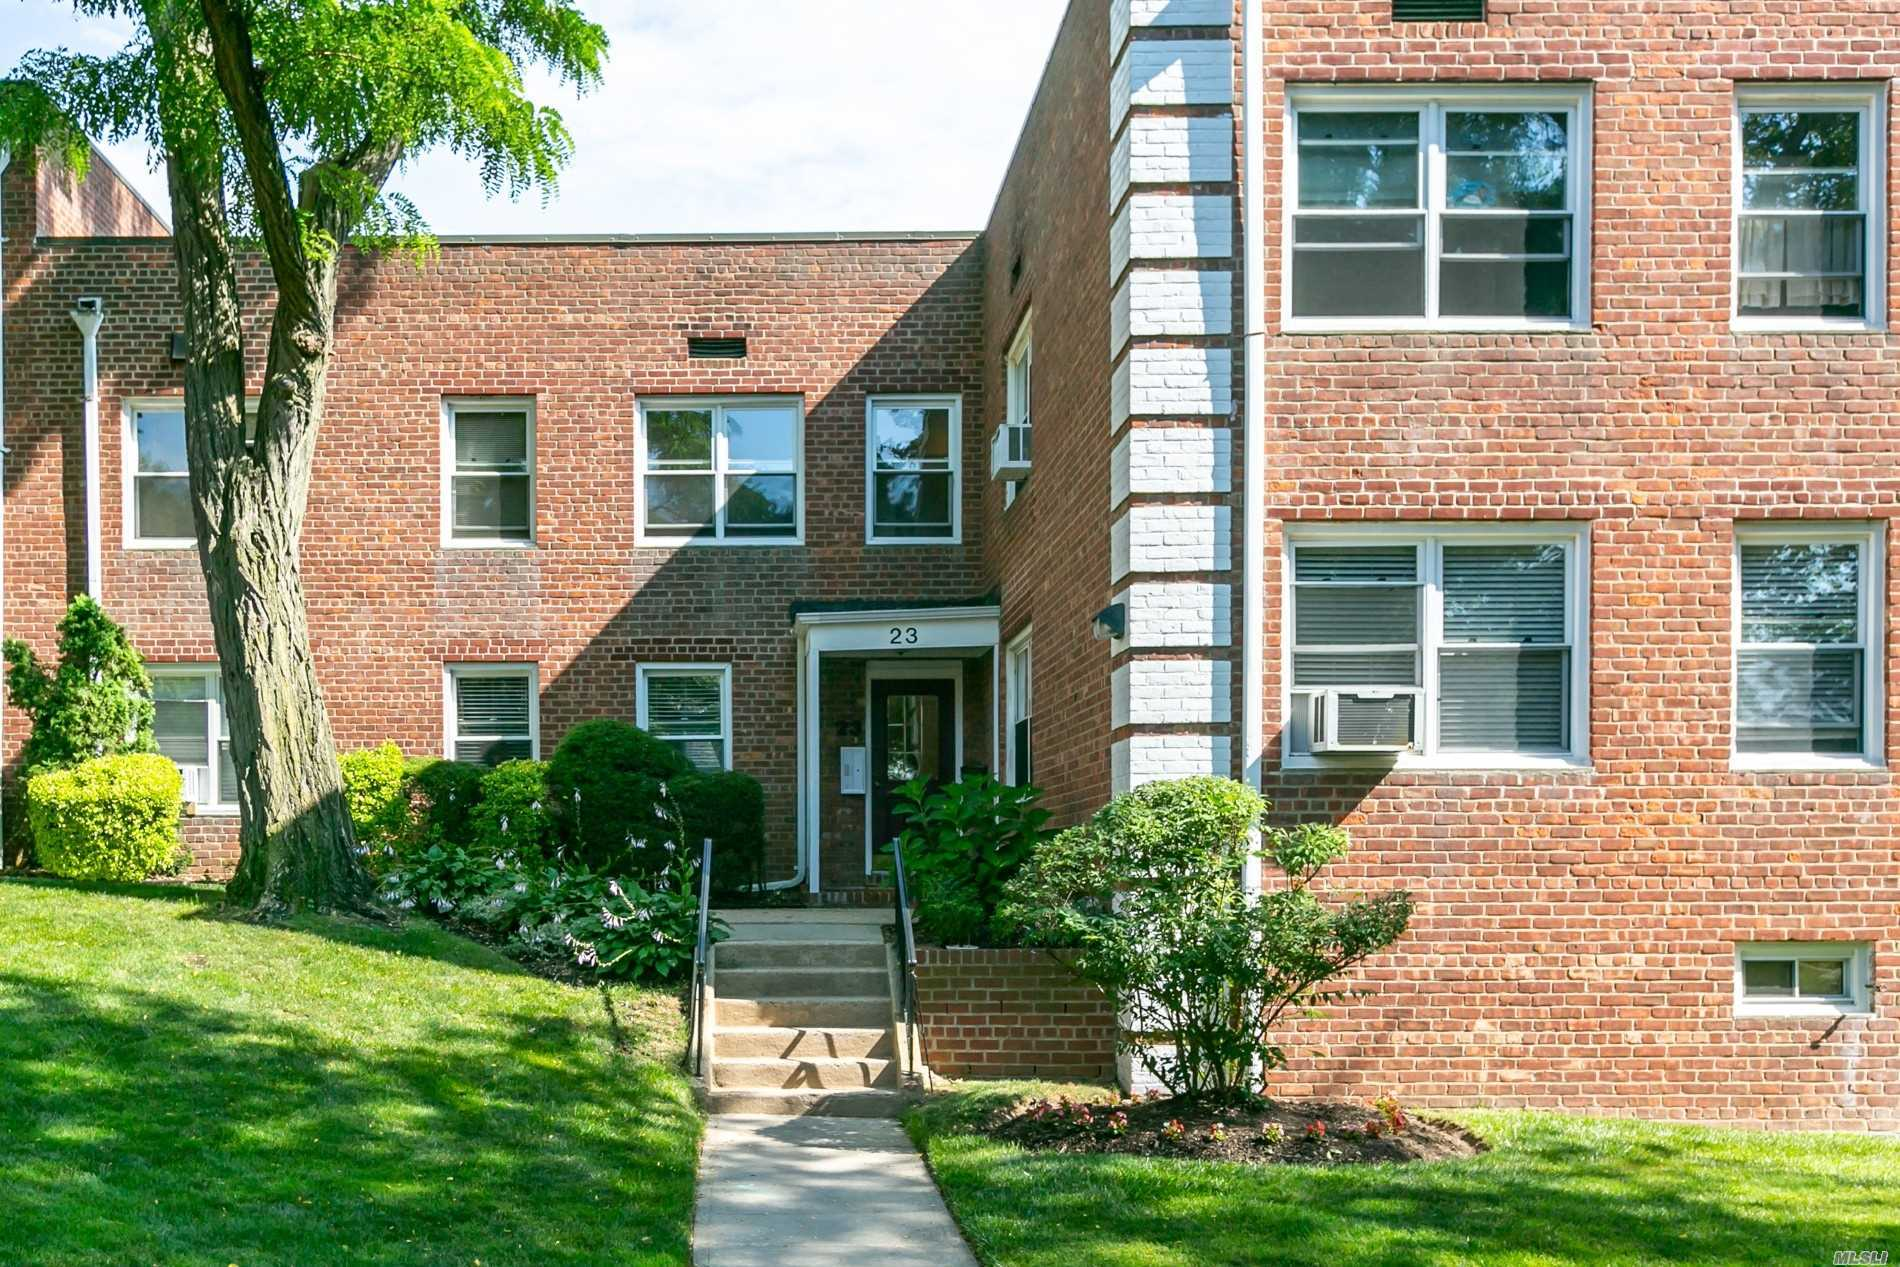 Second Floor, Spacious 2 Bedroom, 1 Full Bath, Lr, Dr & Kitchen. Convenient To Lirr, Highways, Shopping, Library, Restaurants, Parks & The Village. Bike And Laundry Room On Premises. Closets Galore! Maintenance Includes Taxes, Repairs, Grounds And Water. Gas, Electric And Cable Are Not Included